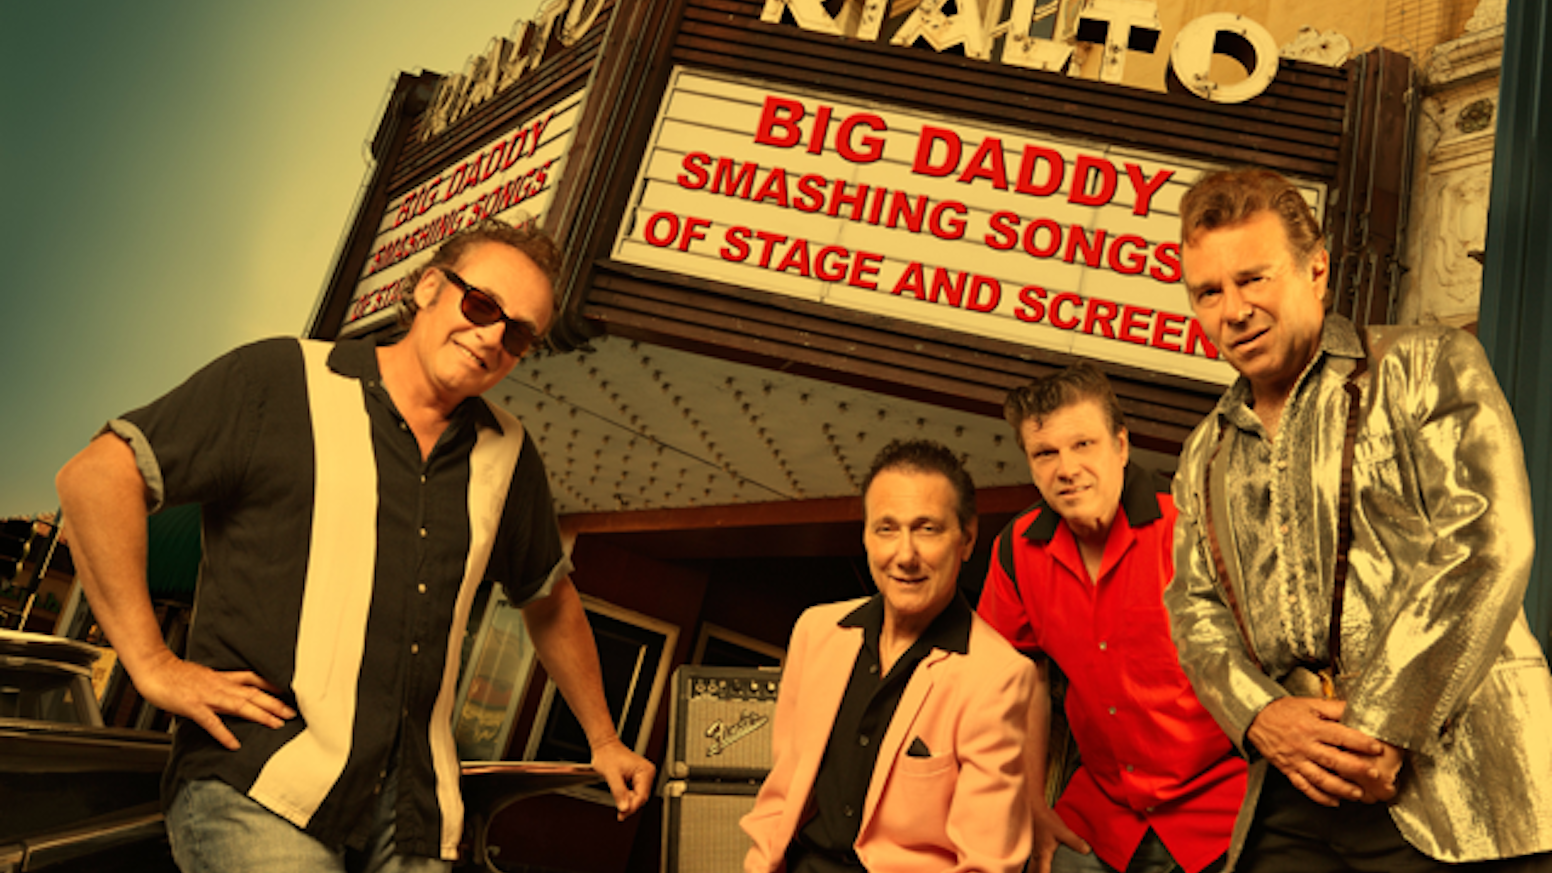 A new album by Big Daddy: Songs from Broadway Musicals and Feature Films performed in the classic styles of the 1950's.